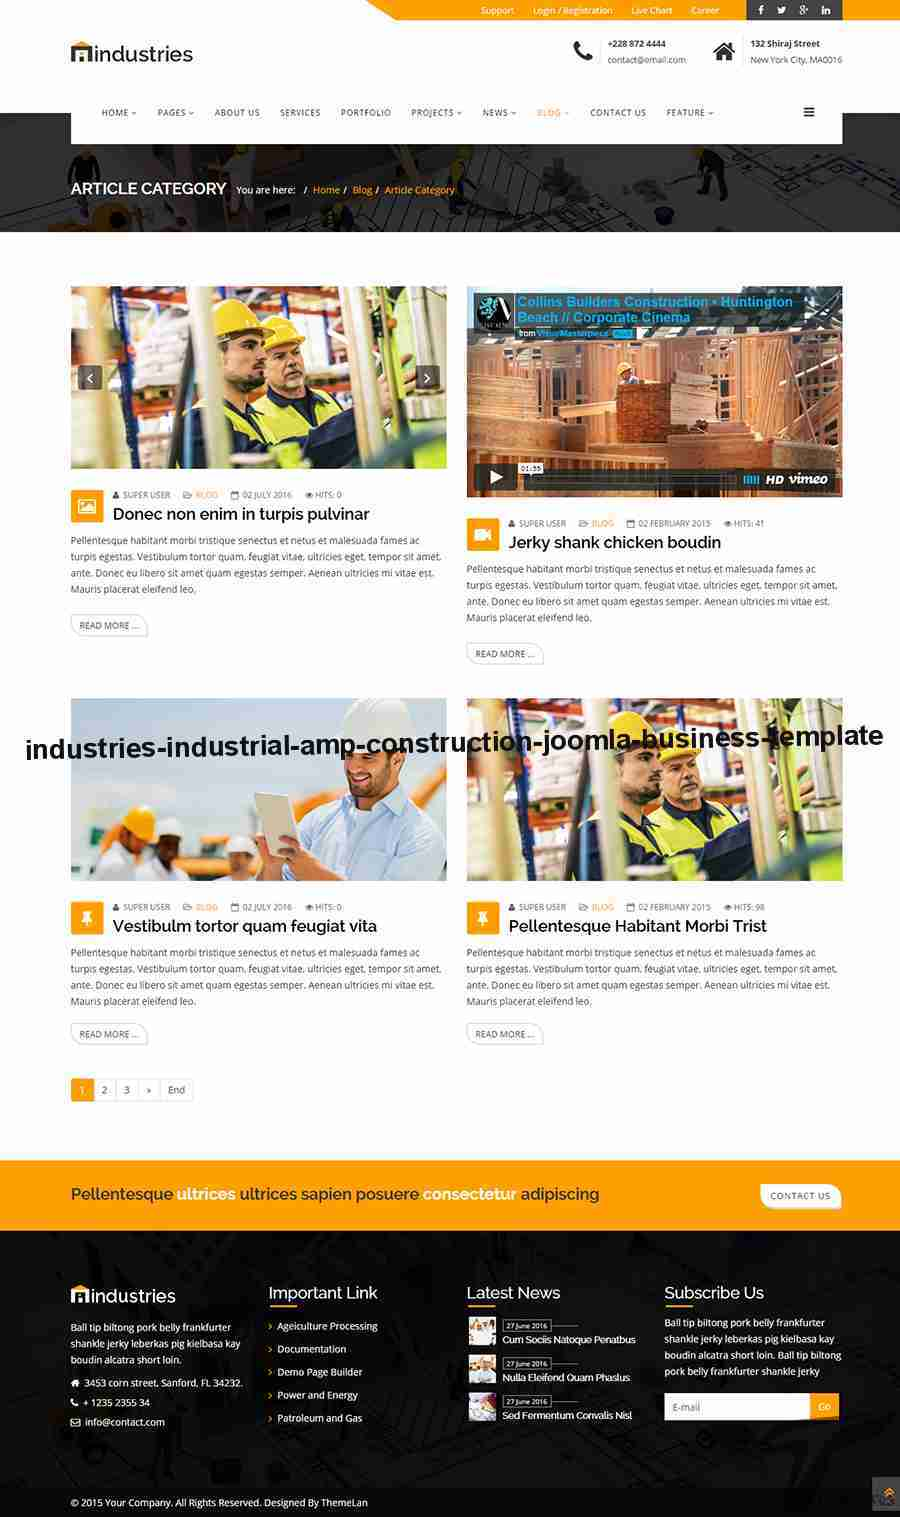 https://images.besthemes.com/images/h1_industries-industrial-amp-construction-joomla-business-template16-_-195277563/16_blog.png